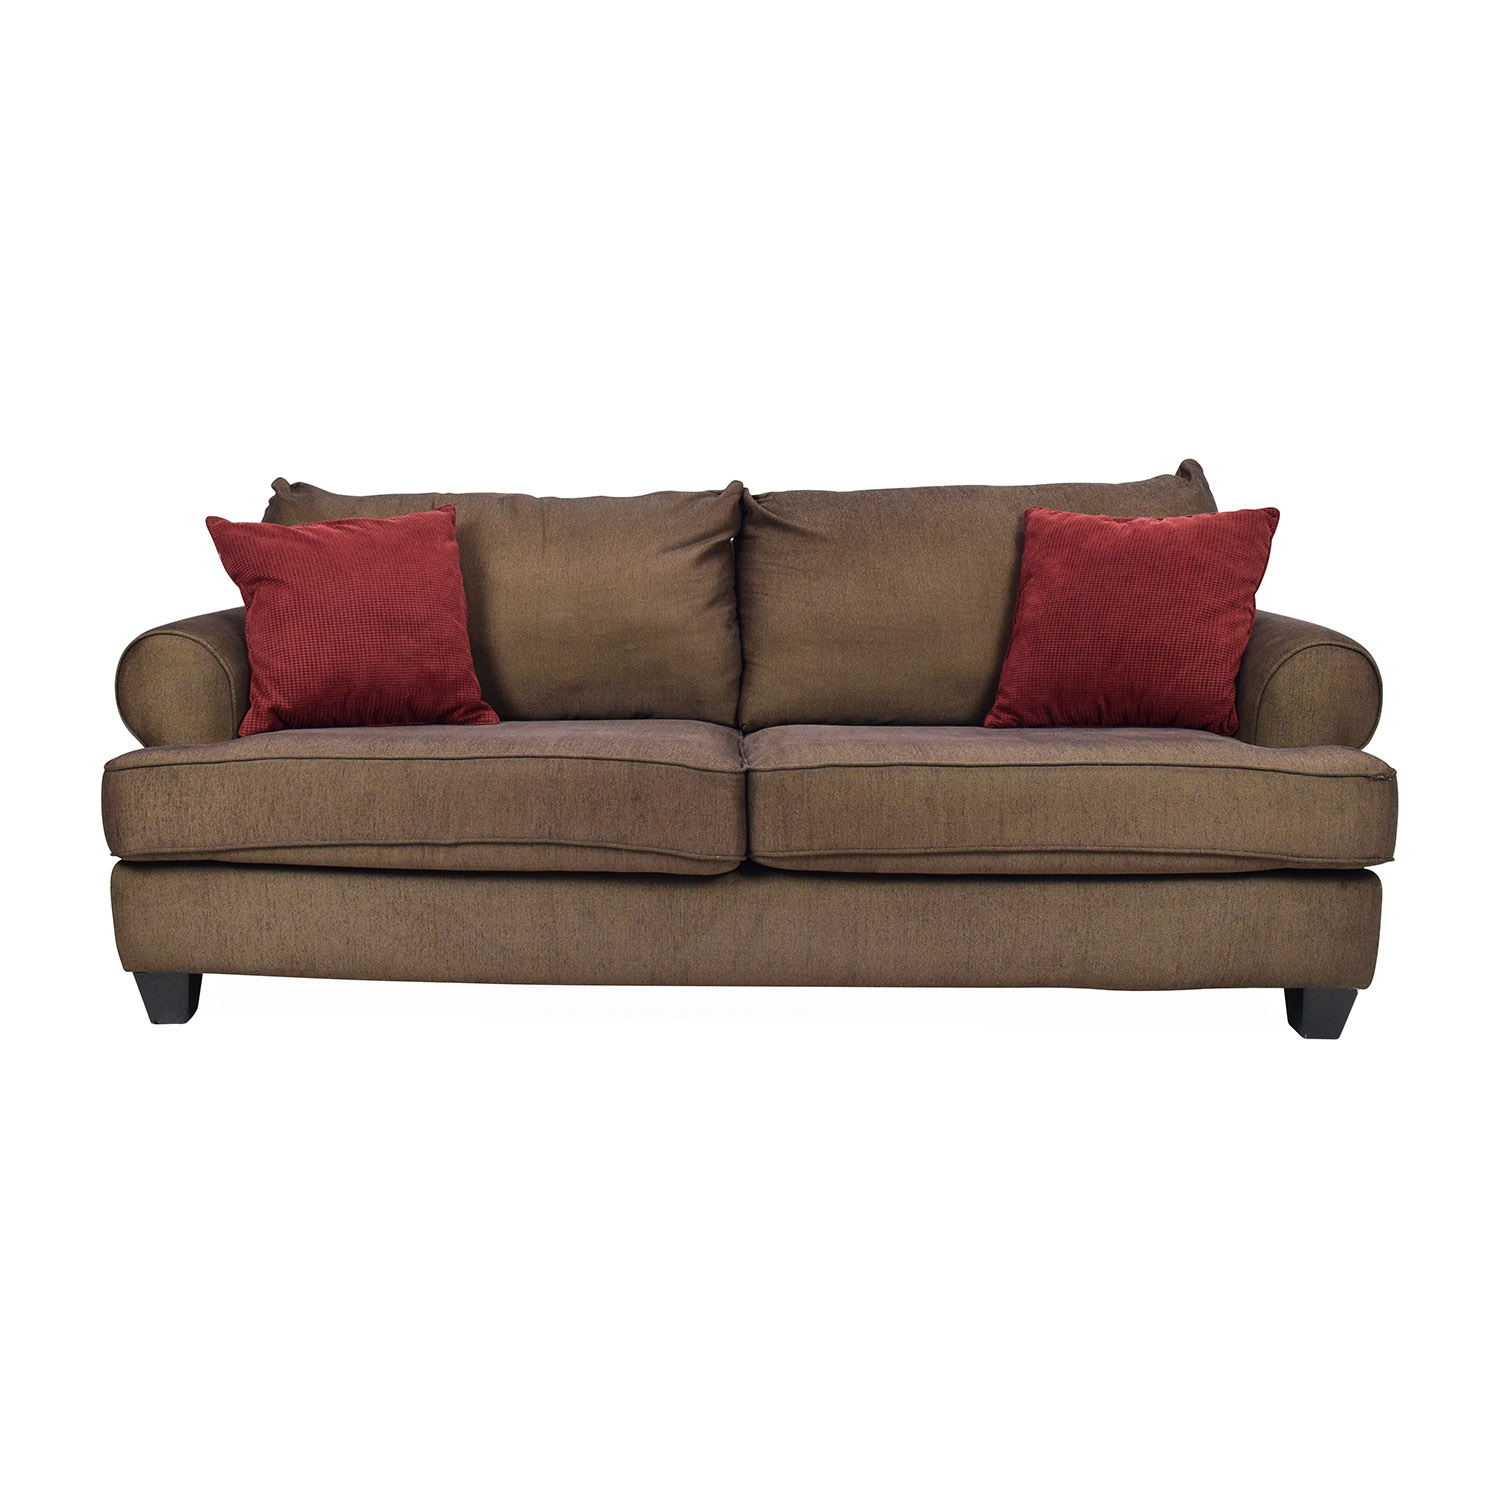 buy Brown Fabric Sofa online